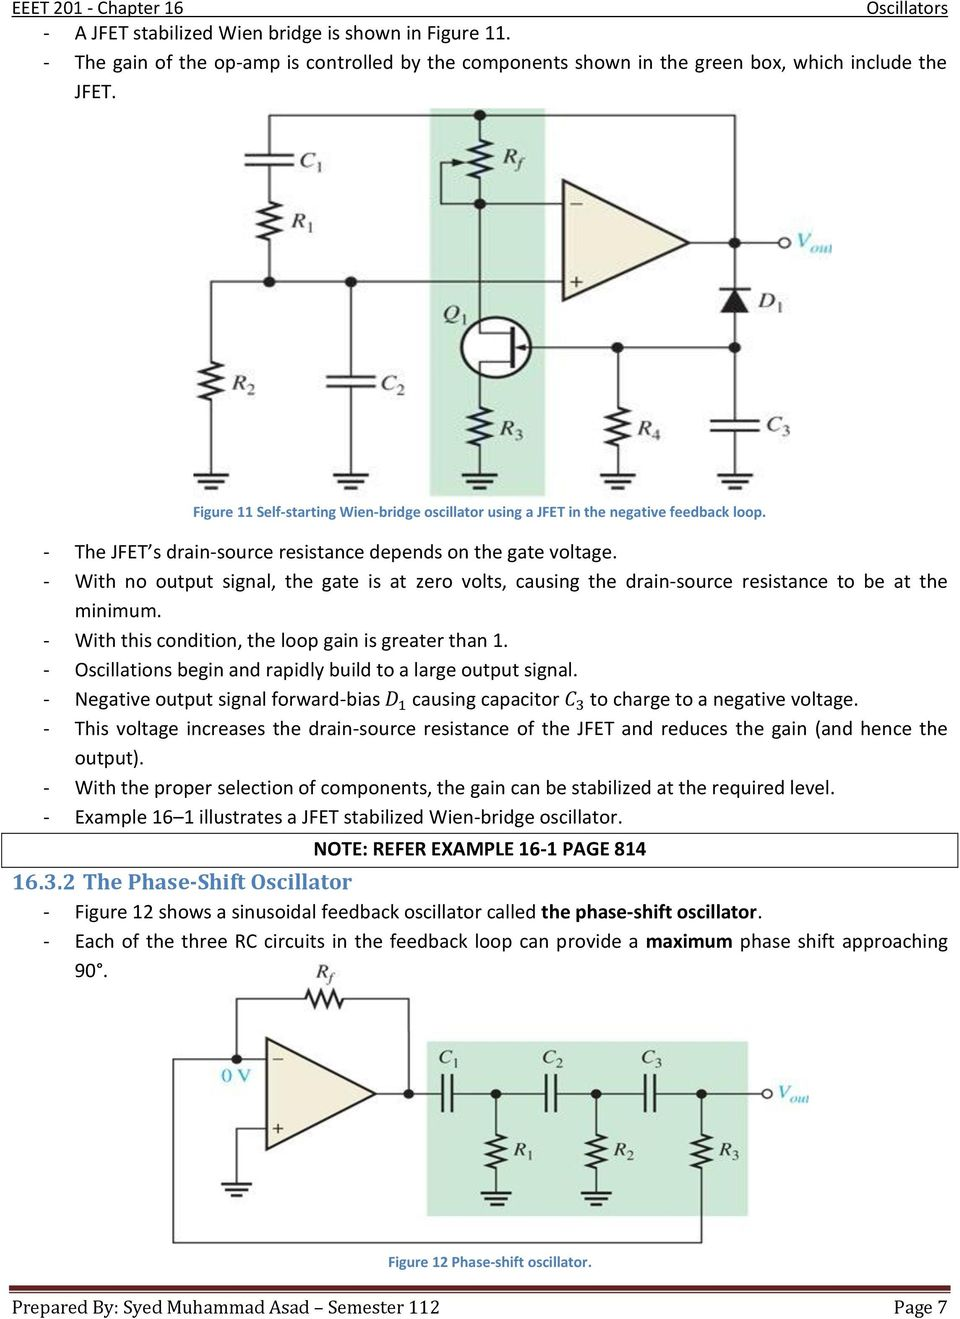 Chapter 16 Oscillators Pdf Phase Shift Oscillator Circuit Using Transistor Image With No Output Signal The Gate Is At Zero Volts Causing Drain